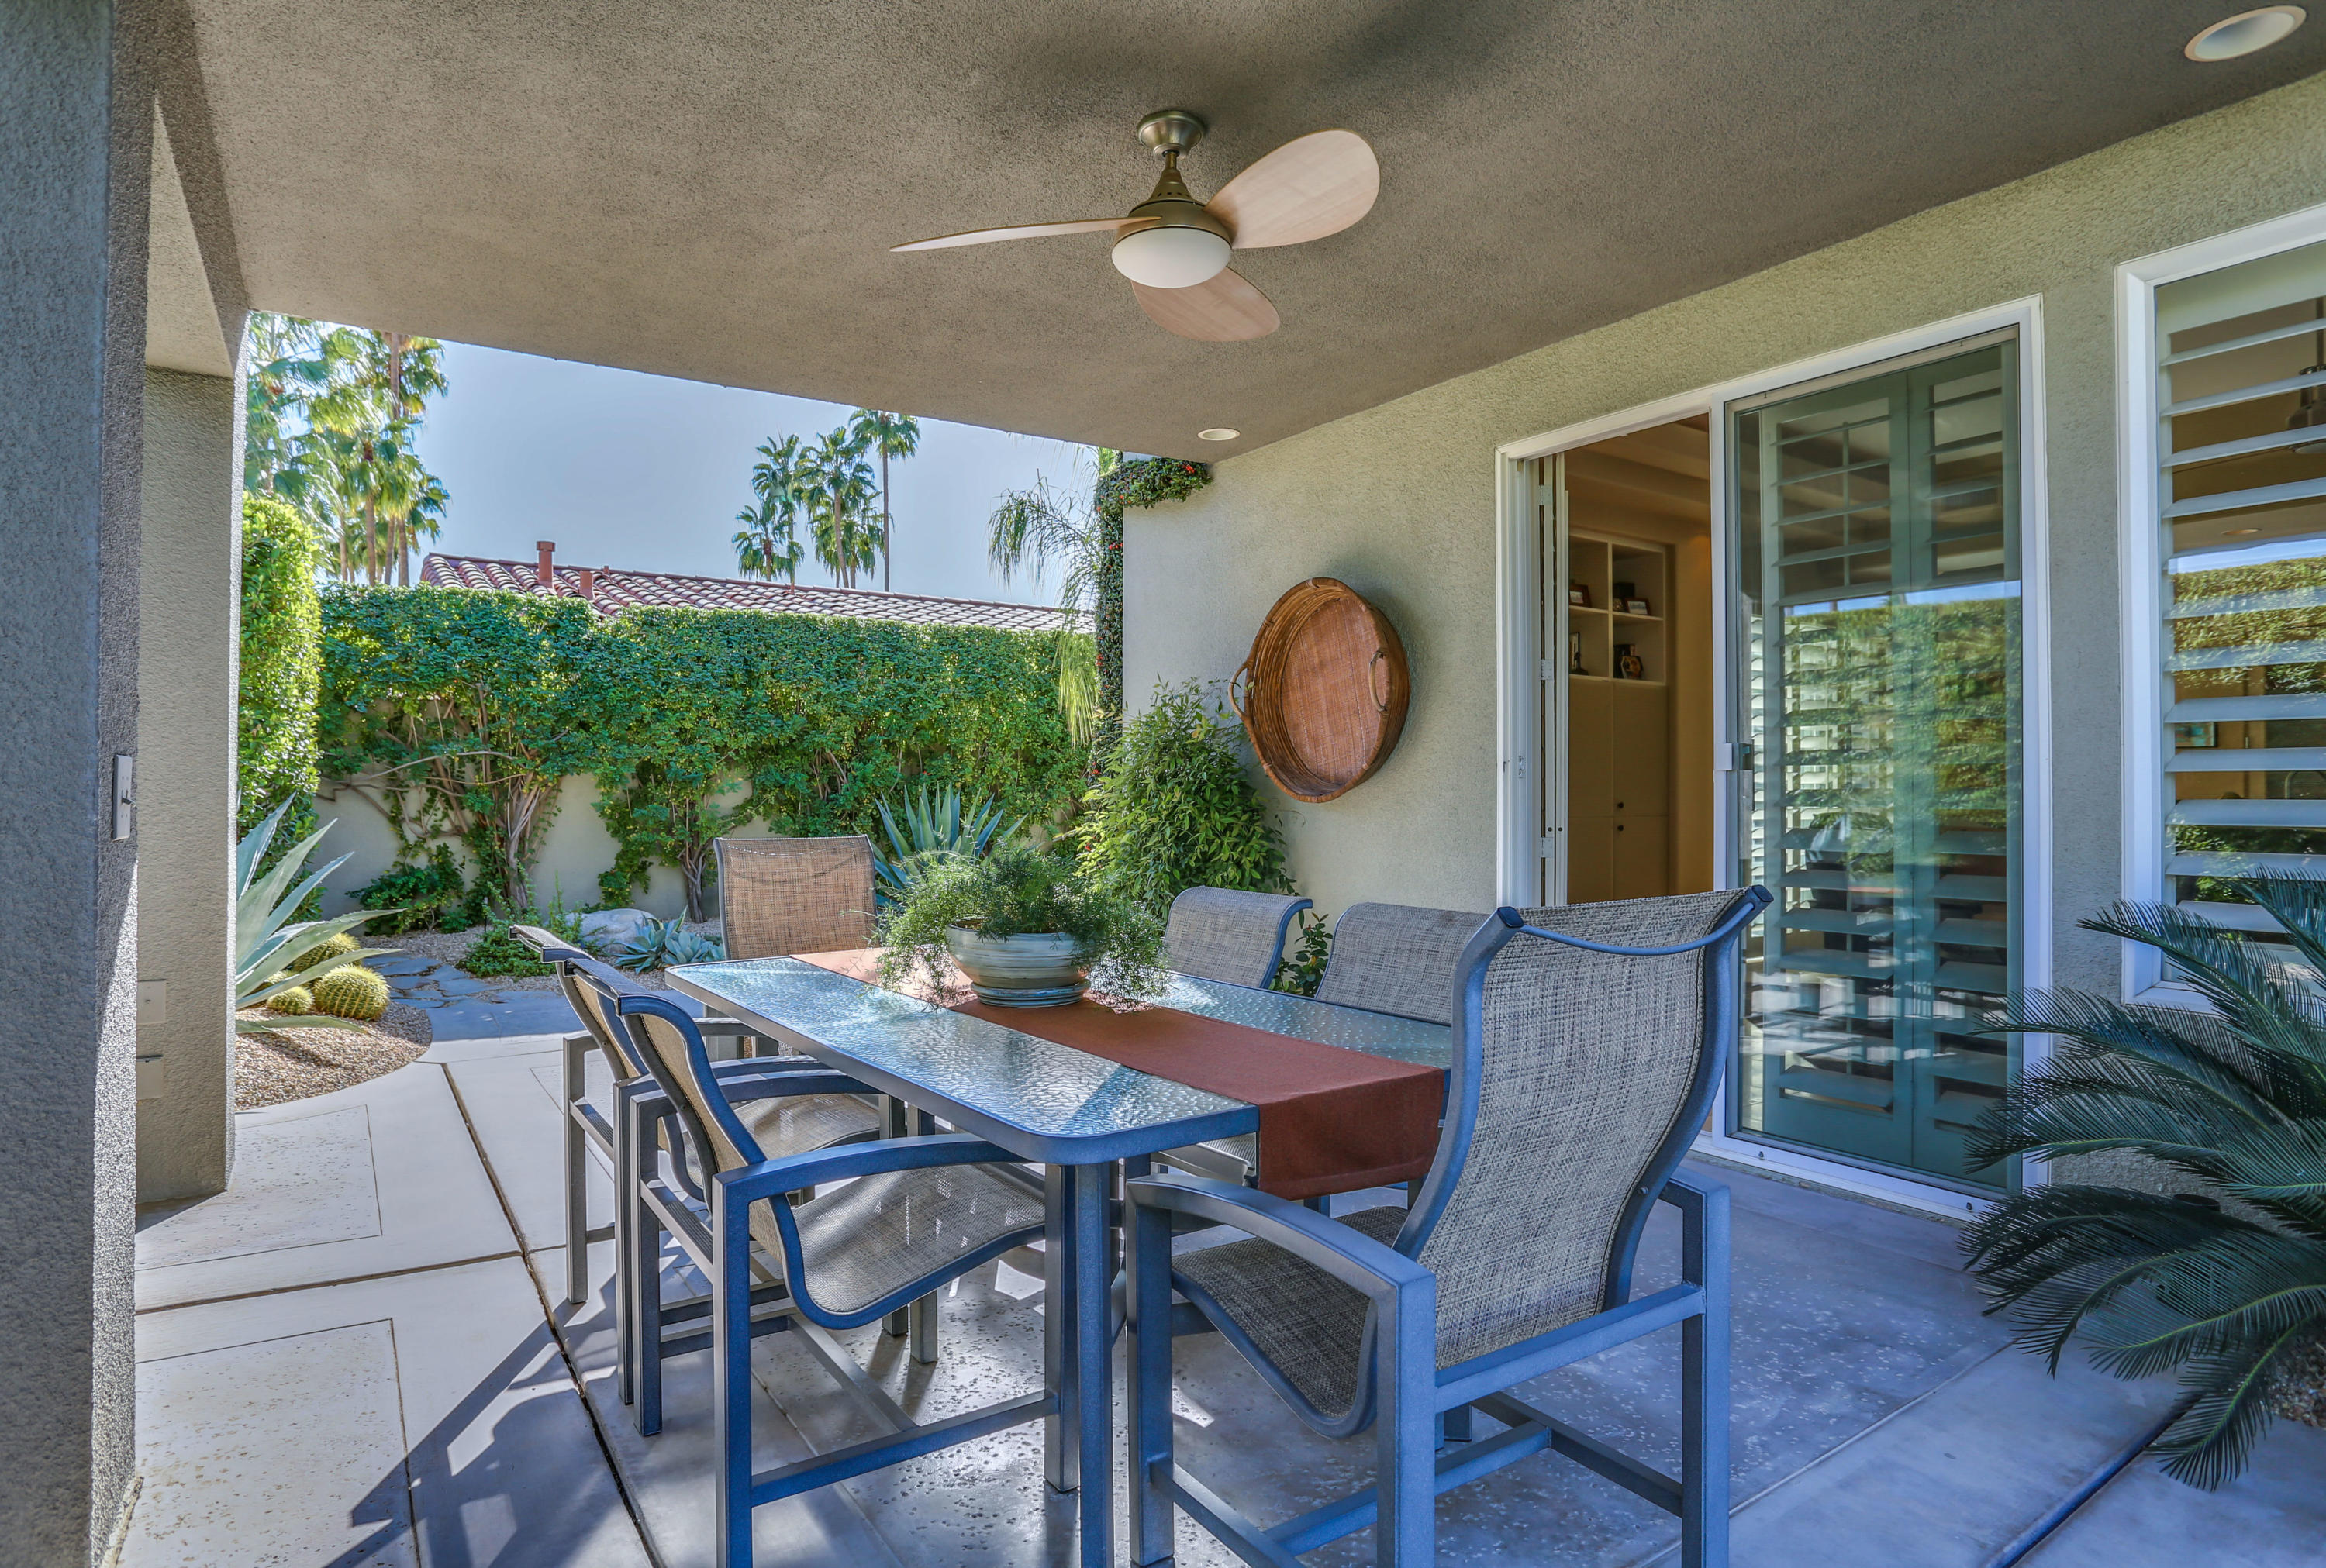 2000 S Caliente Drive, Palm Springs, California 92264, 3 Bedrooms Bedrooms, ,3 BathroomsBathrooms,Residential,For Sale,2000 S Caliente Drive,219035800